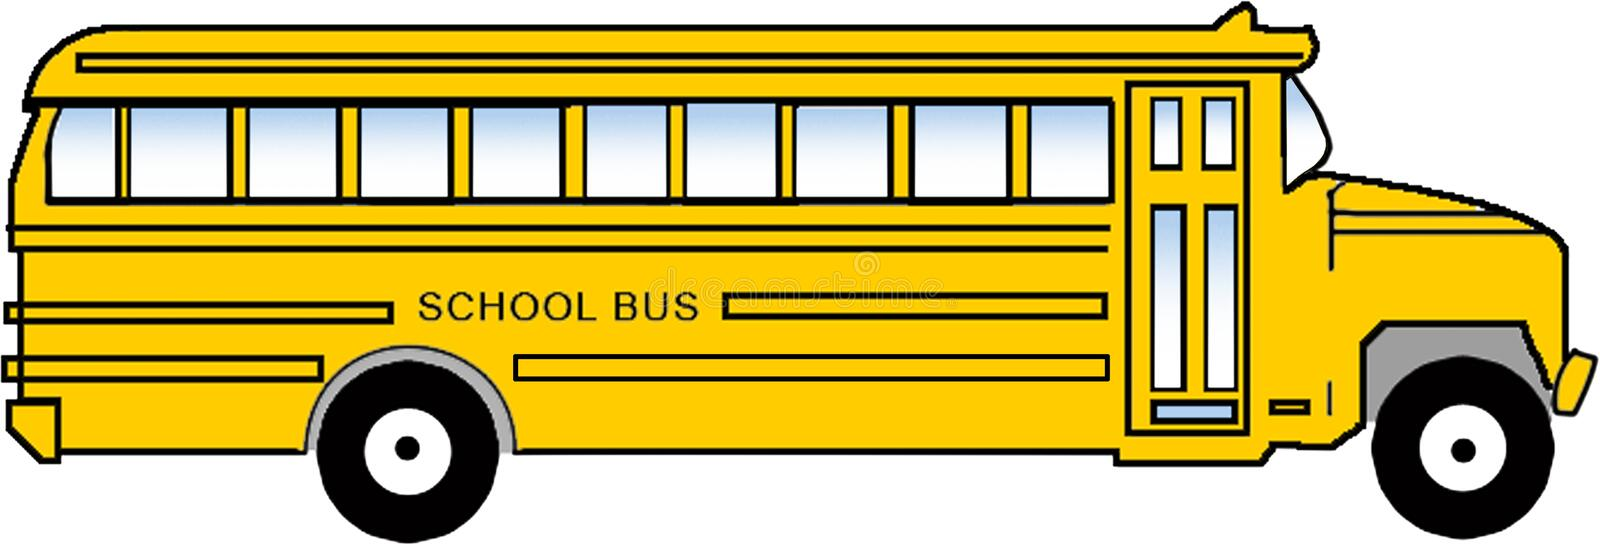 school bus clipart stock illustration illustration of children 294586 rh dreamstime com bus clipart black and white bus clip art black and white